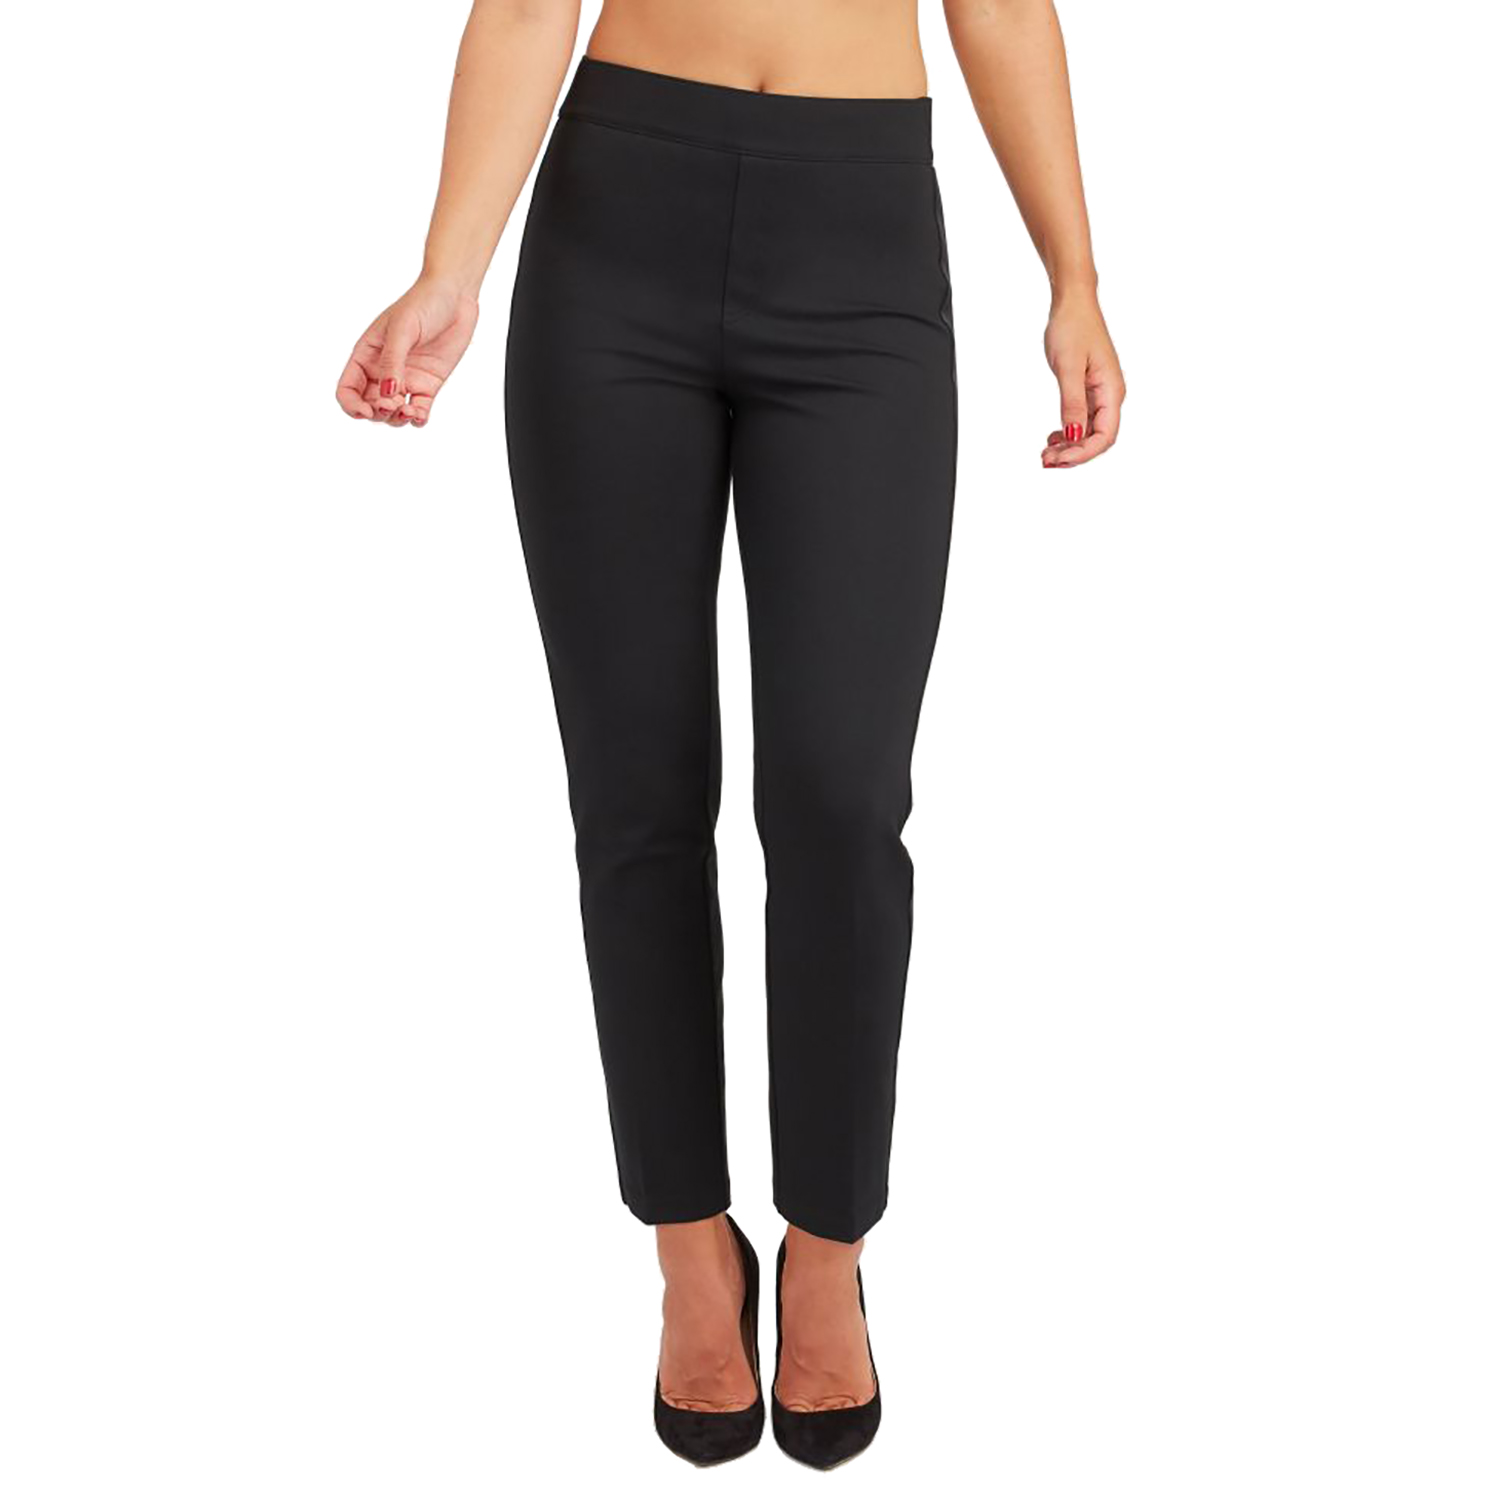 spanx pants leggings bra